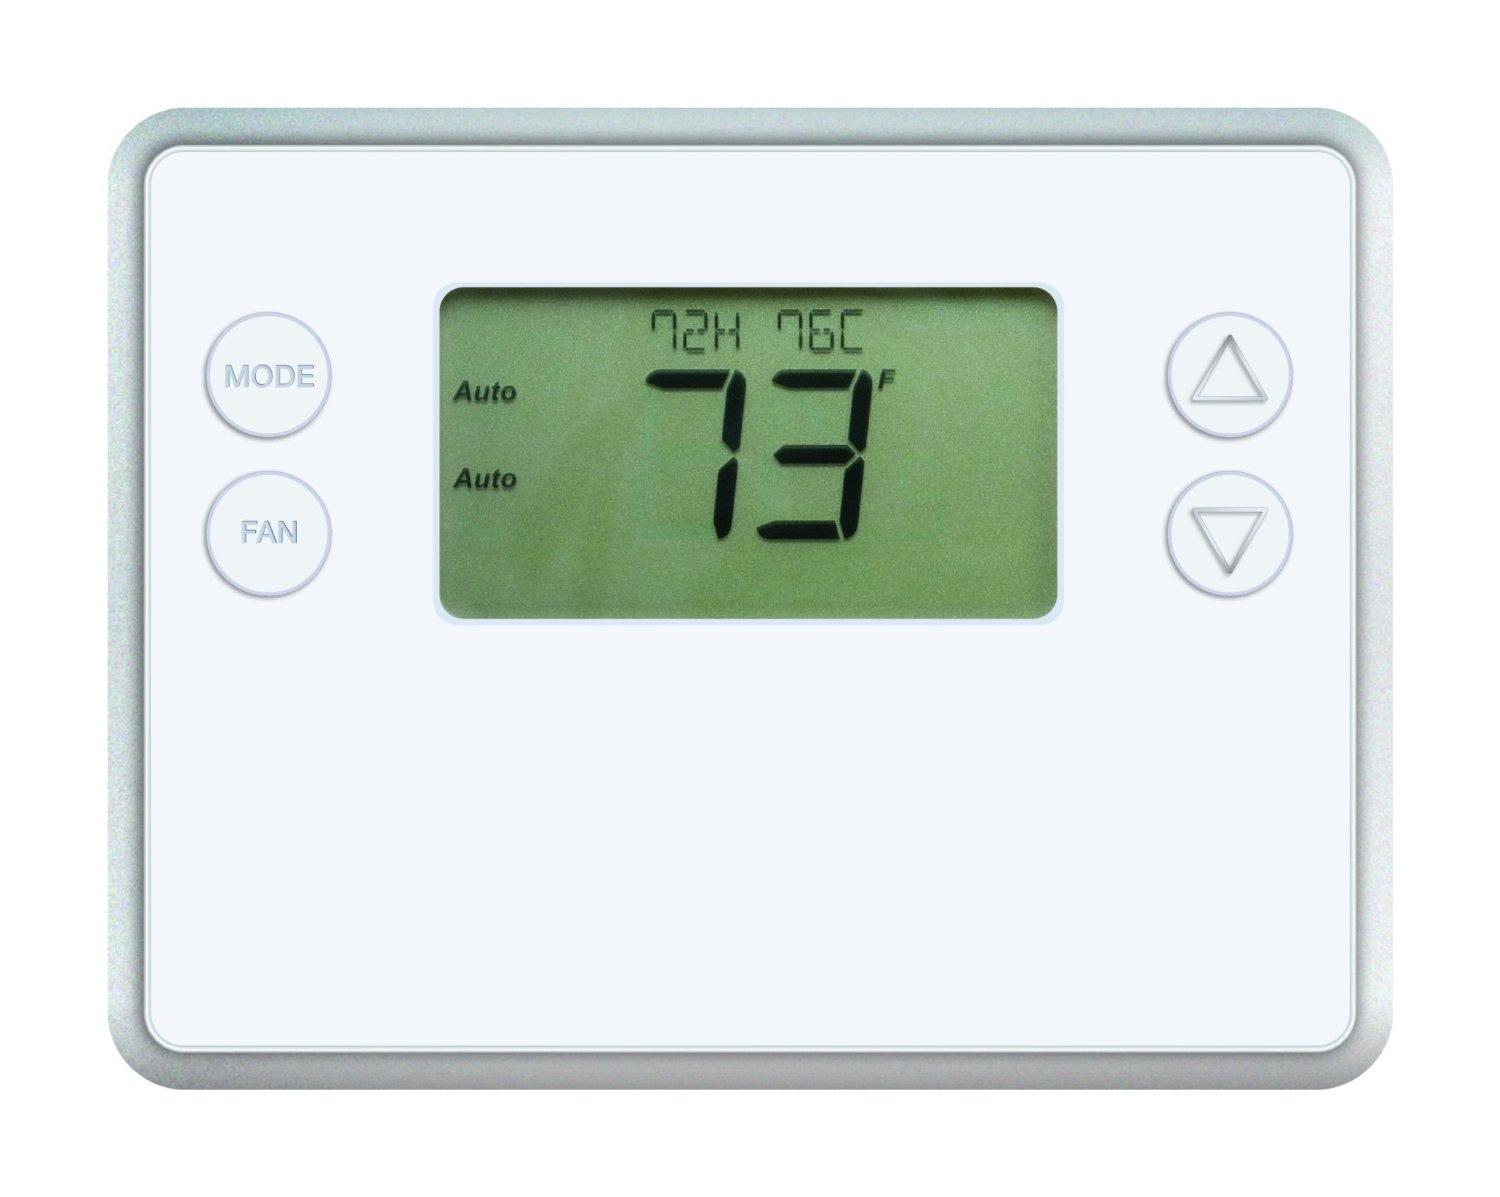 Gocontrol Thermostat Z Wave Battery Powered Works With Alexa Cd Writer 8211 How The Burner From Manufacturer